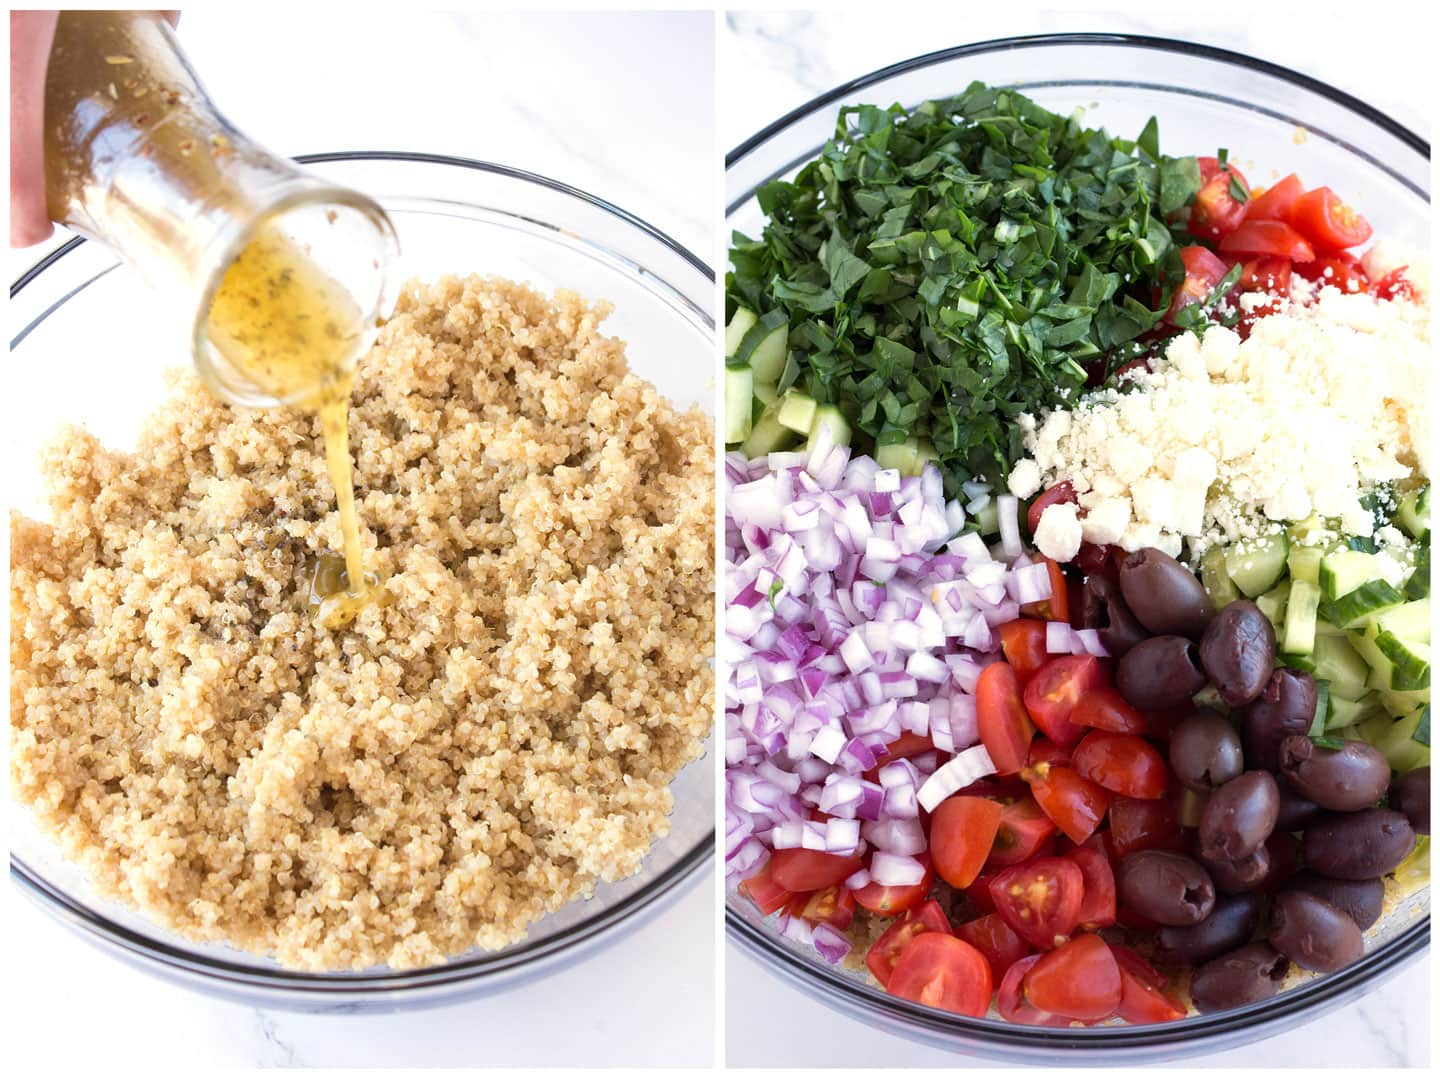 Quinoa an toppings in bowls before tossing